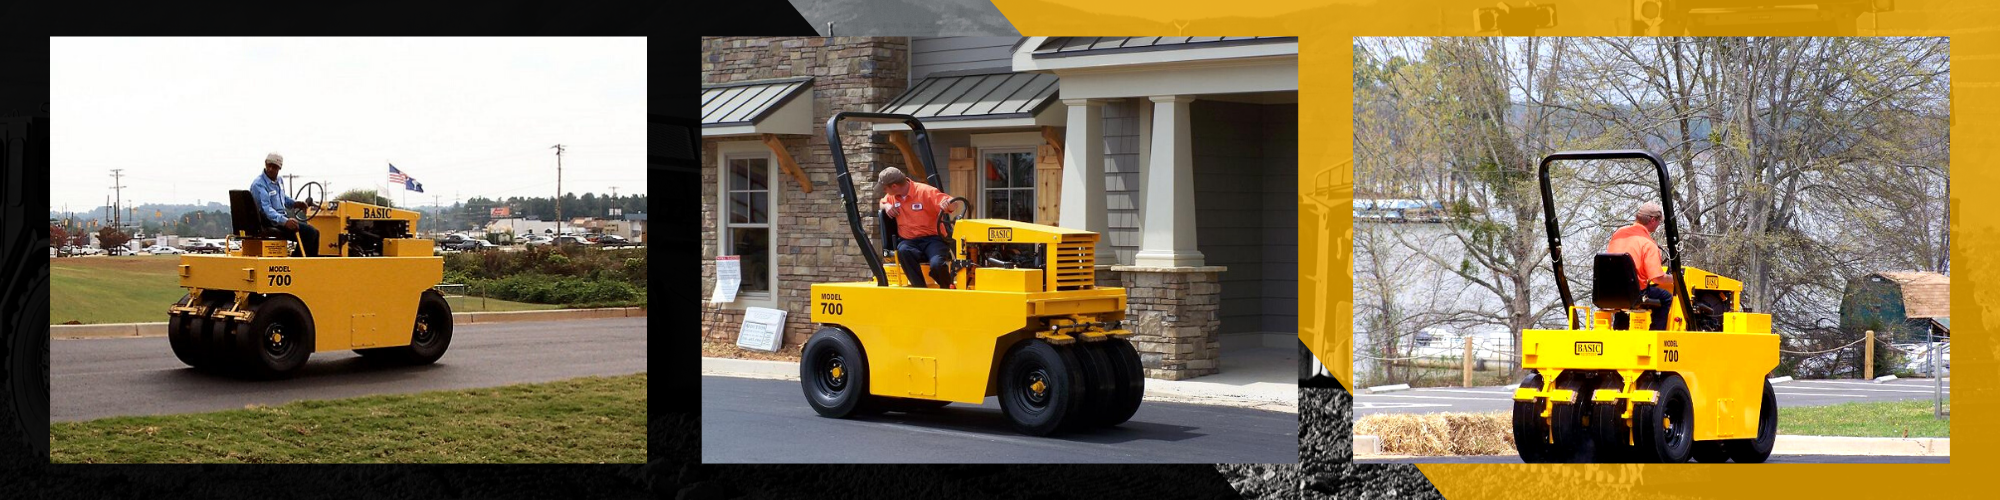 Model 700 Pneumatic Asphalt Roller photos